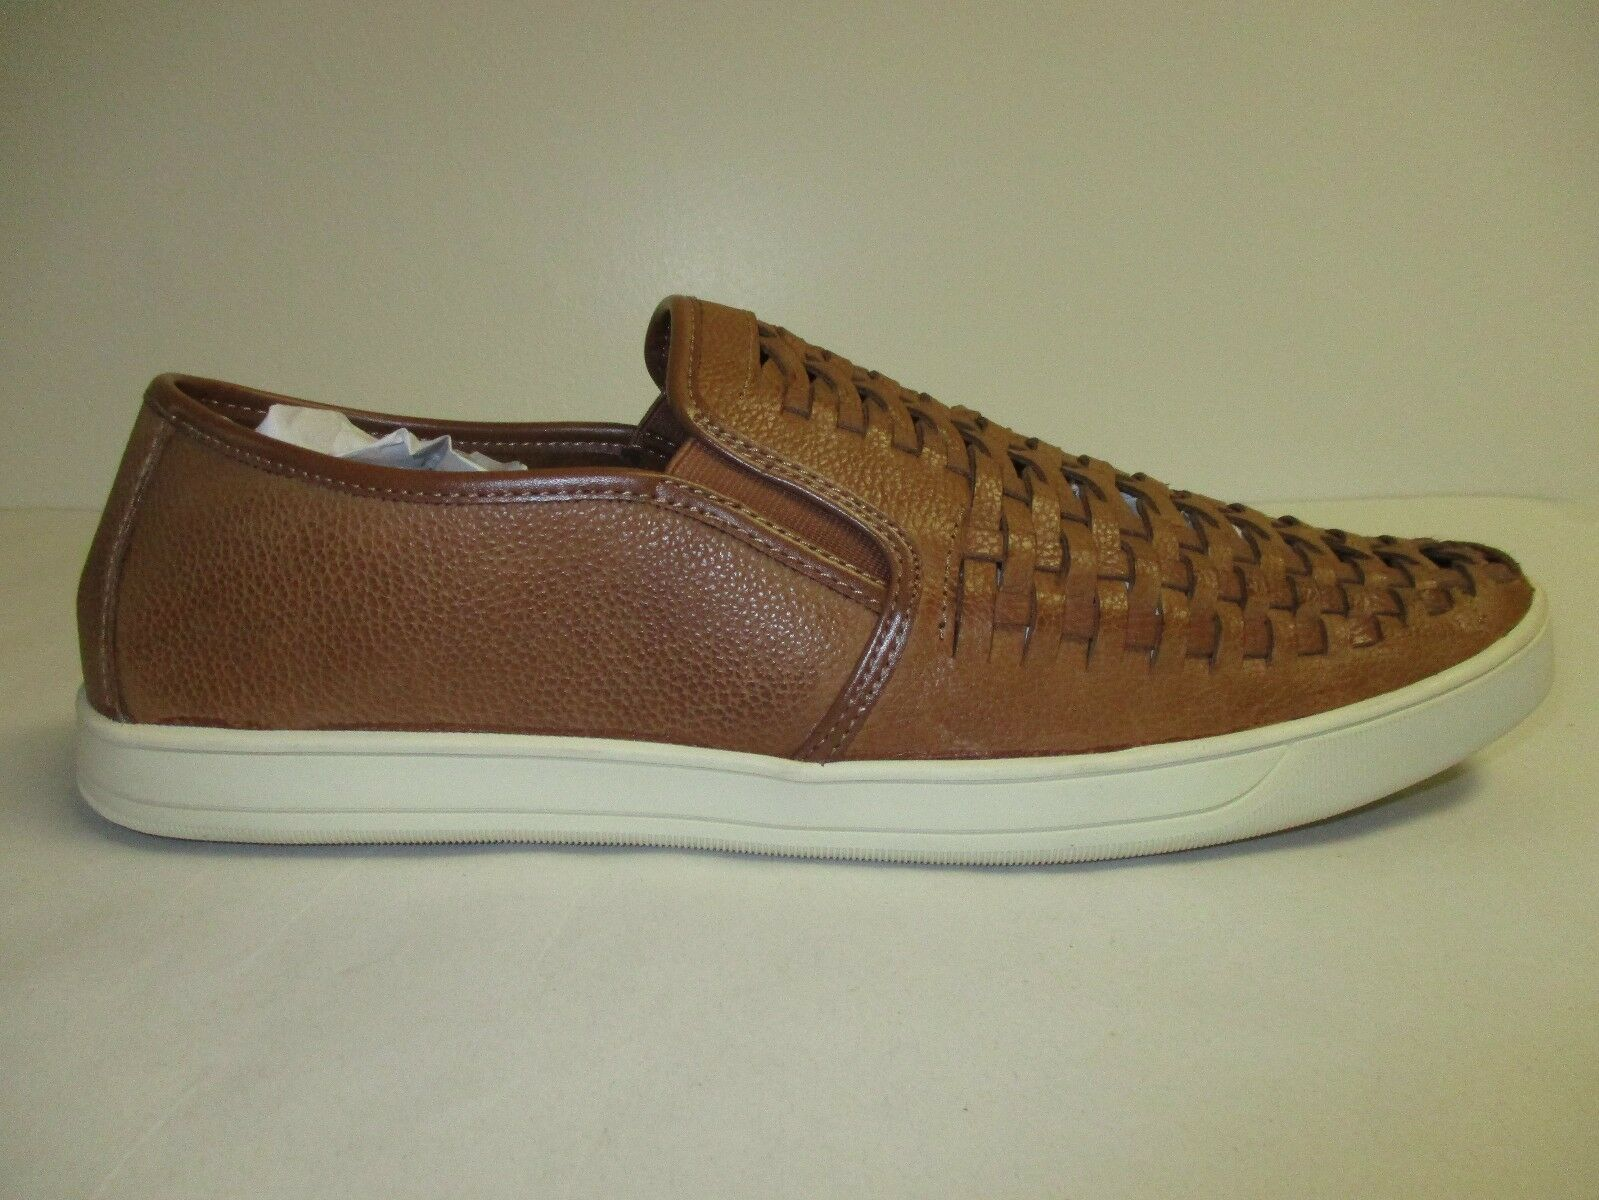 Steve Madden Size 10 M WEEVERR Cognac Leather Fashion Sneakers New Mens shoes